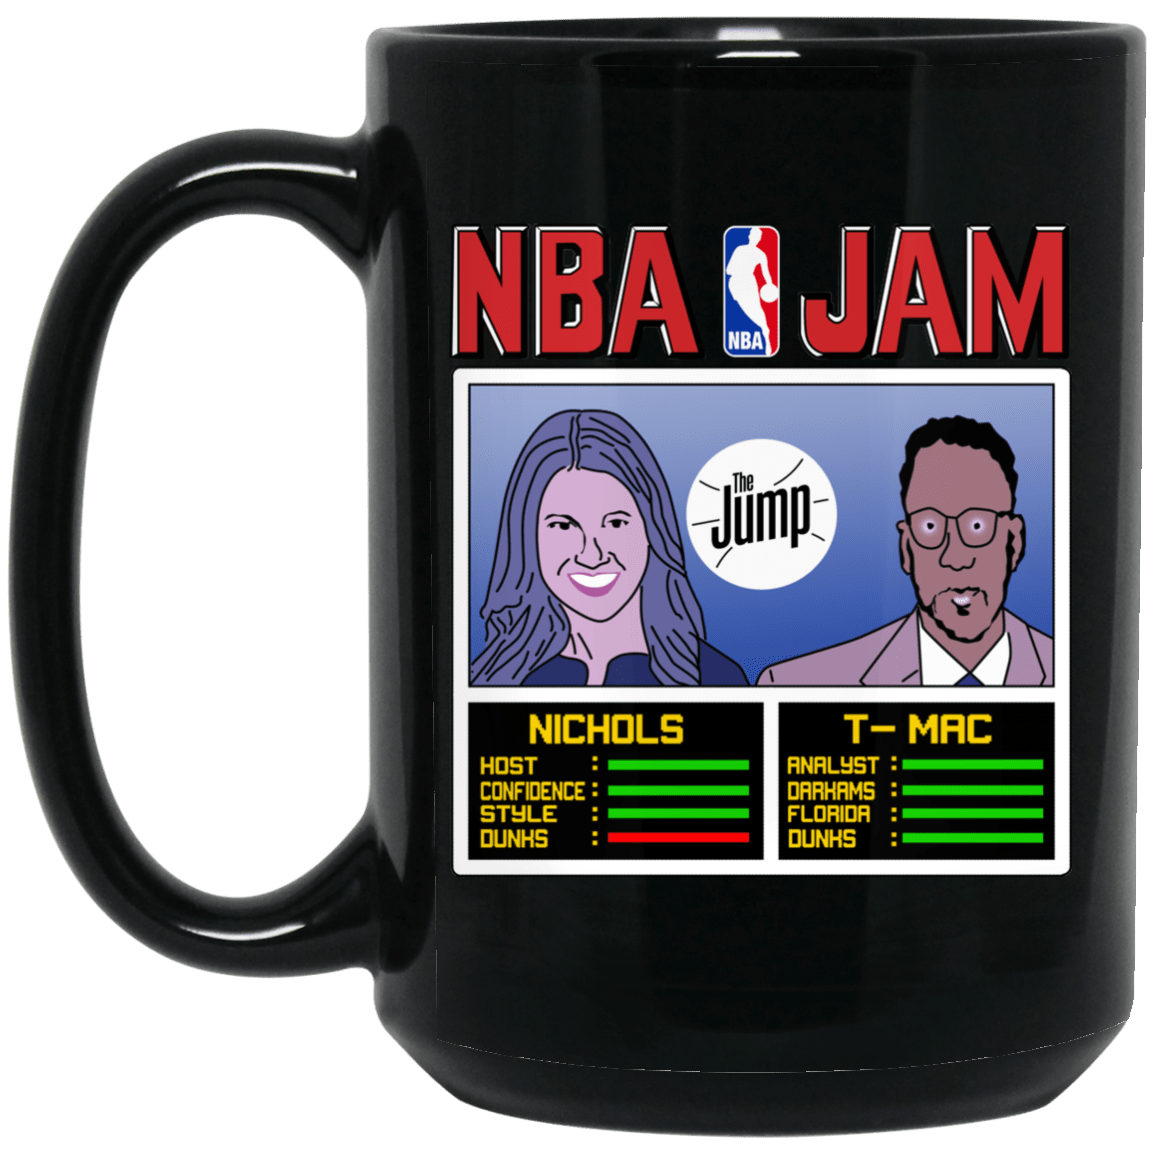 NBA Jam The Jump Nichols TMac Black Mug 1066-10182-93051323-49311 - Tee Ript